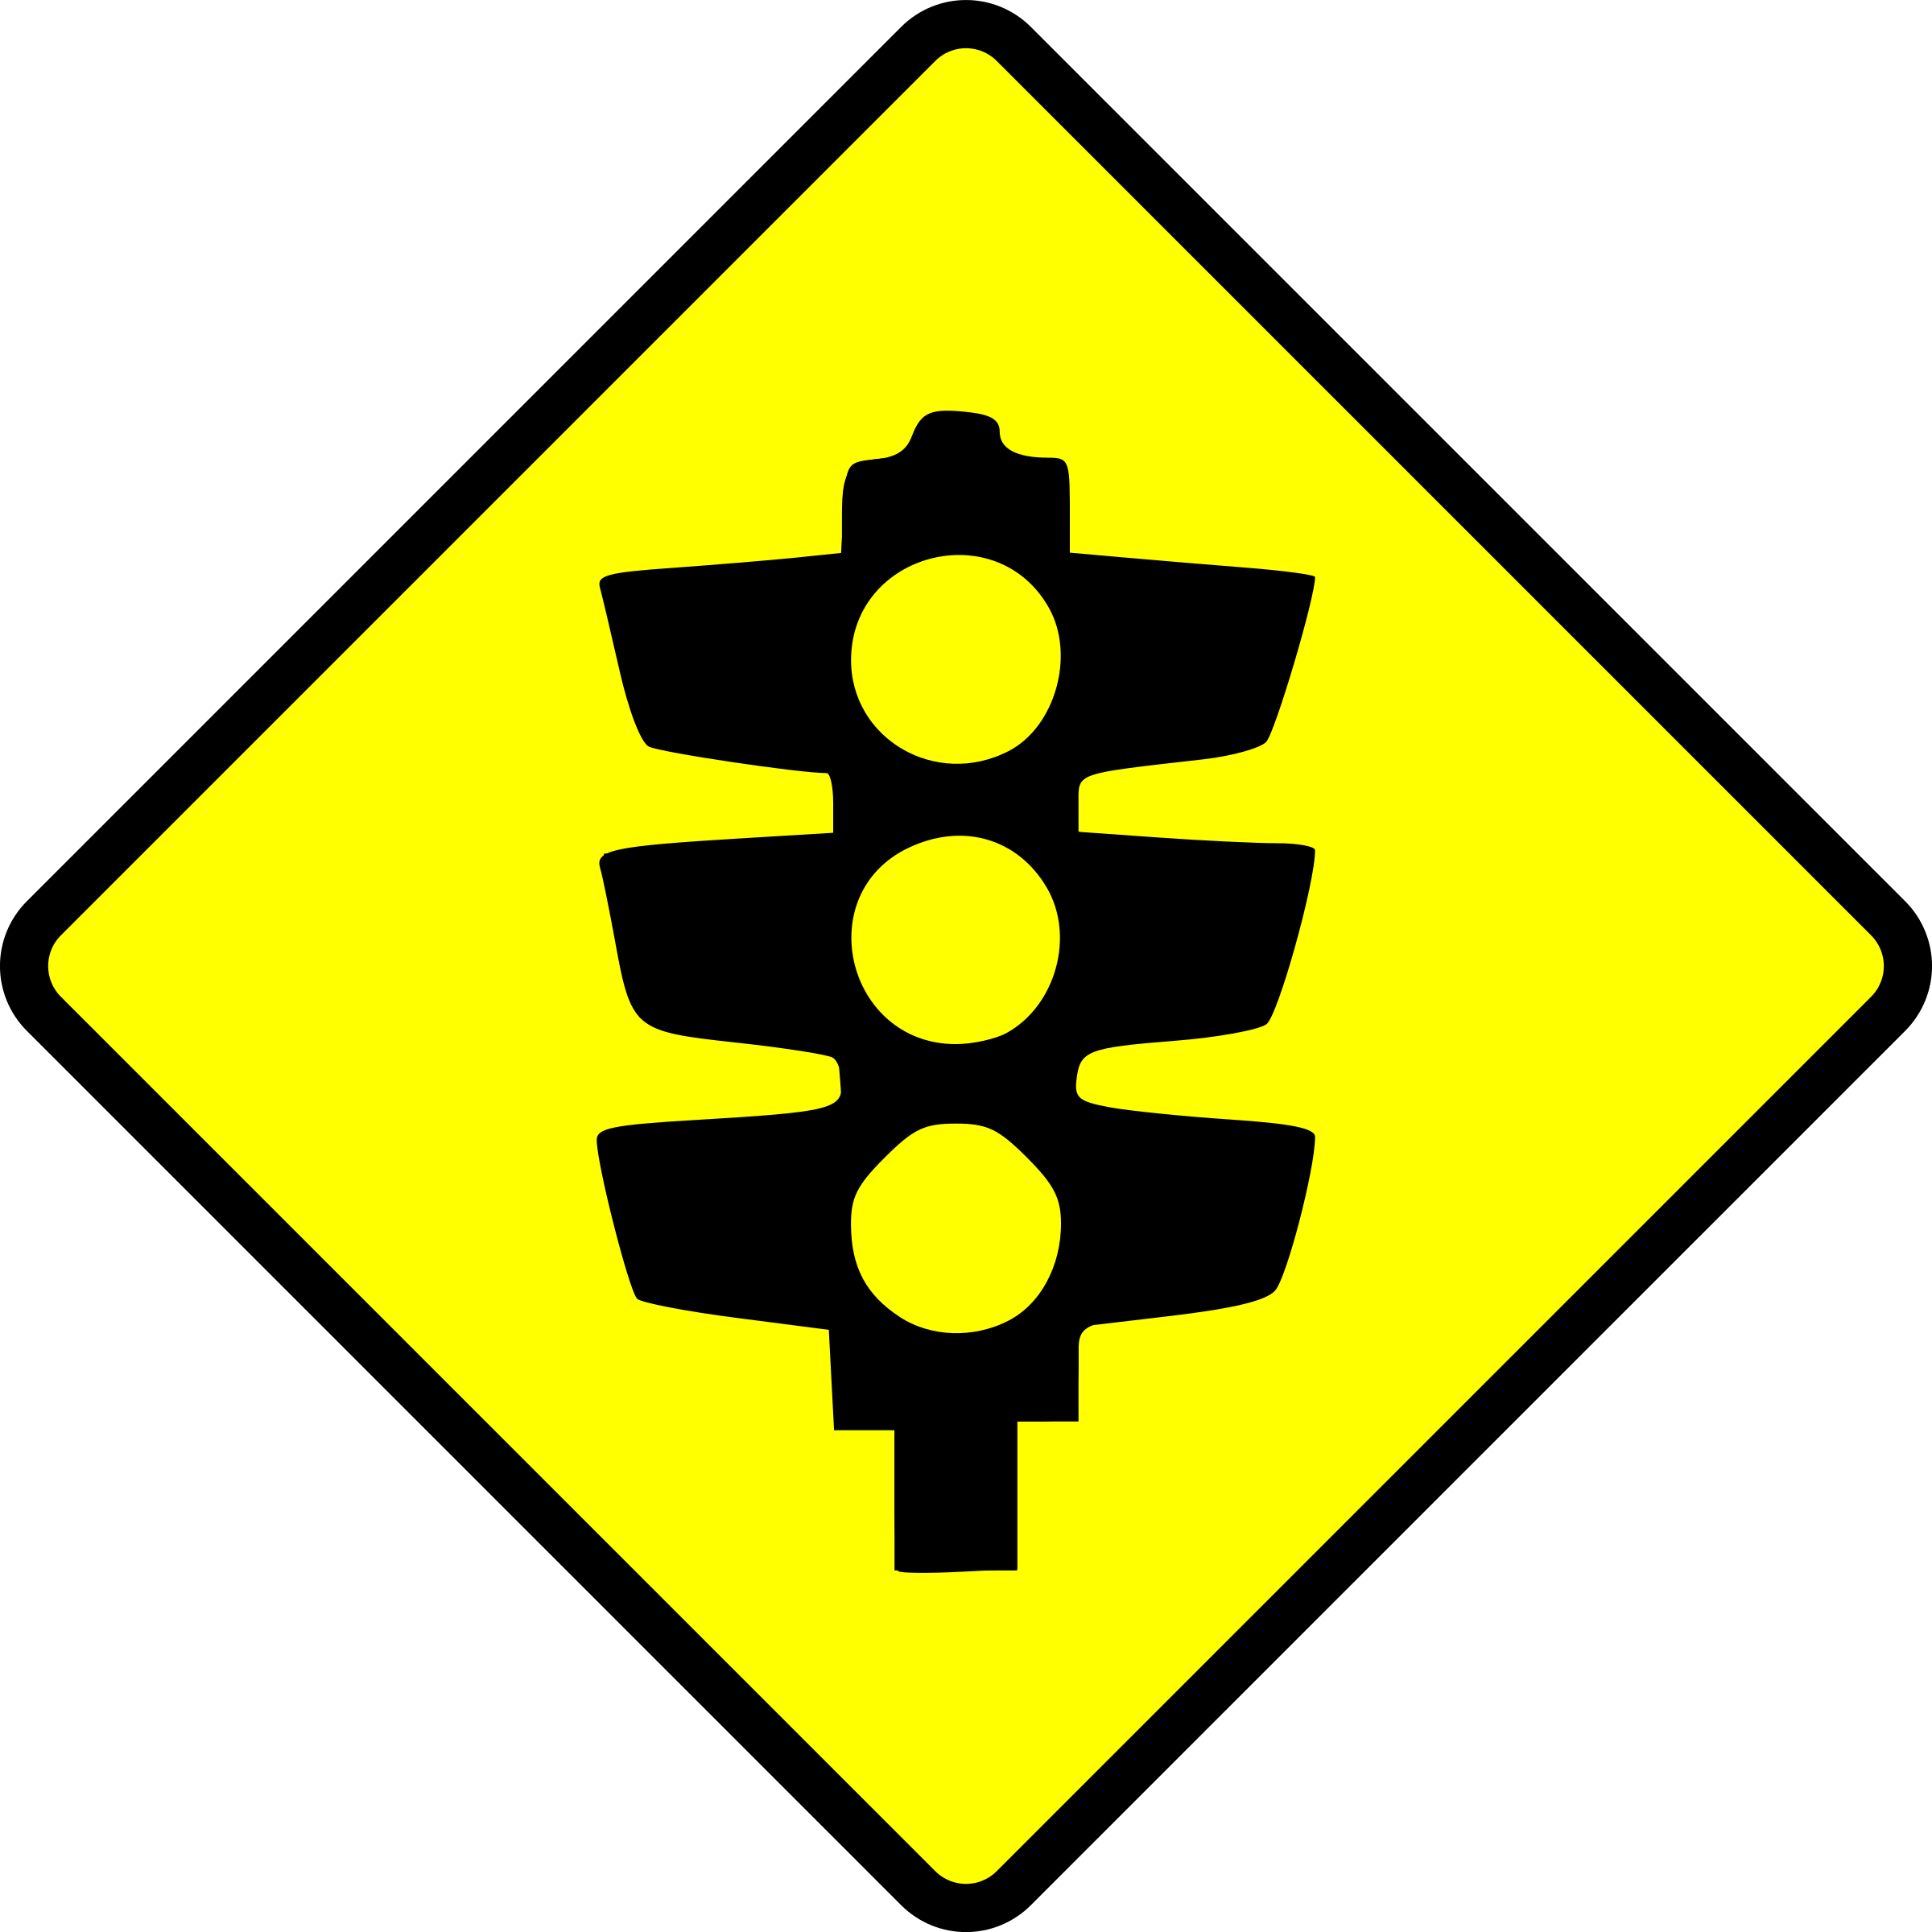 Lights big image png. Caution clipart traffic